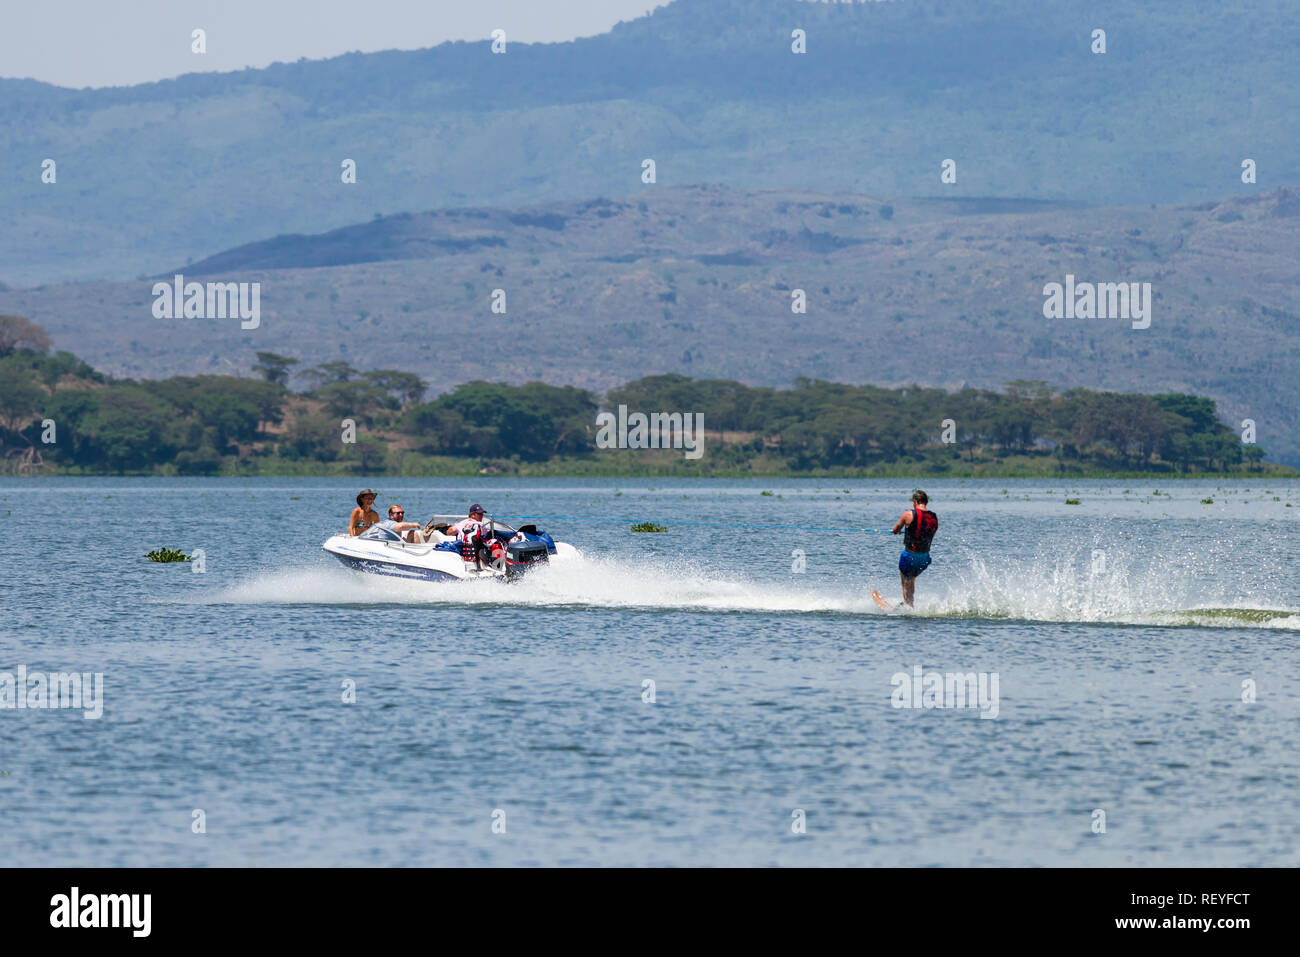 A Caucasian man wakeboarding behind a powerboat as passengers watch him, Lake Naivasha, Kenya - Stock Image